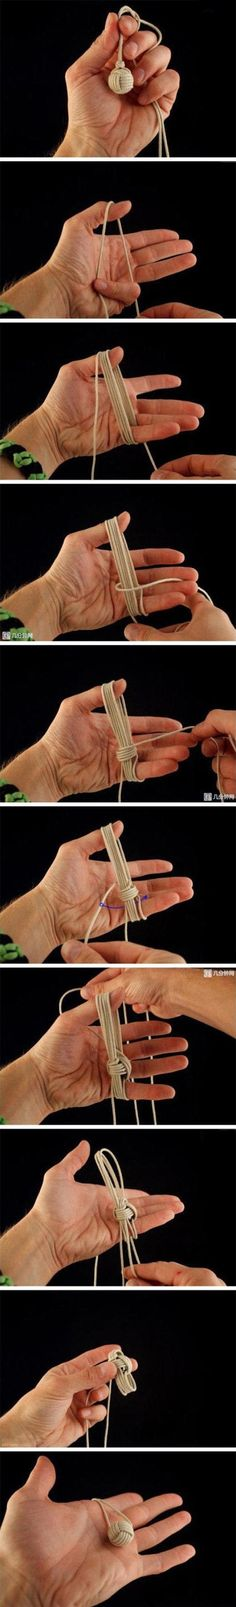 How To Tie An Awesome Knot / Favorite And Forget - Imgur